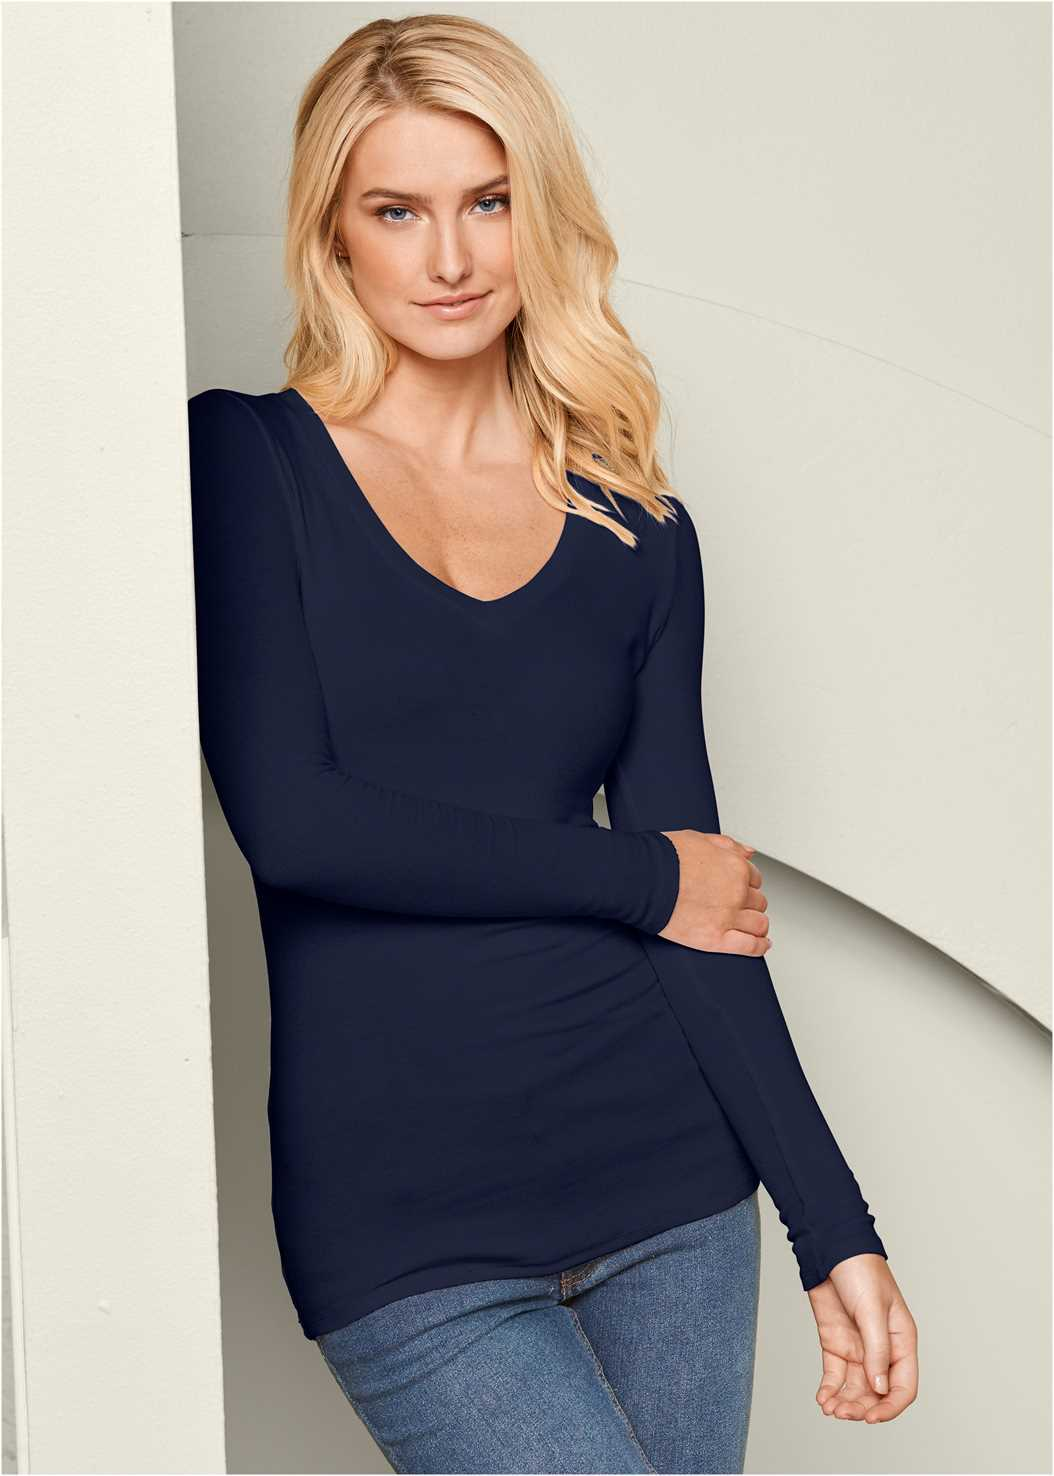 Ribbed V-Neck Top,Casual Bootcut Jeans,Beaded Drop Earrings,Stud Detail Scarf